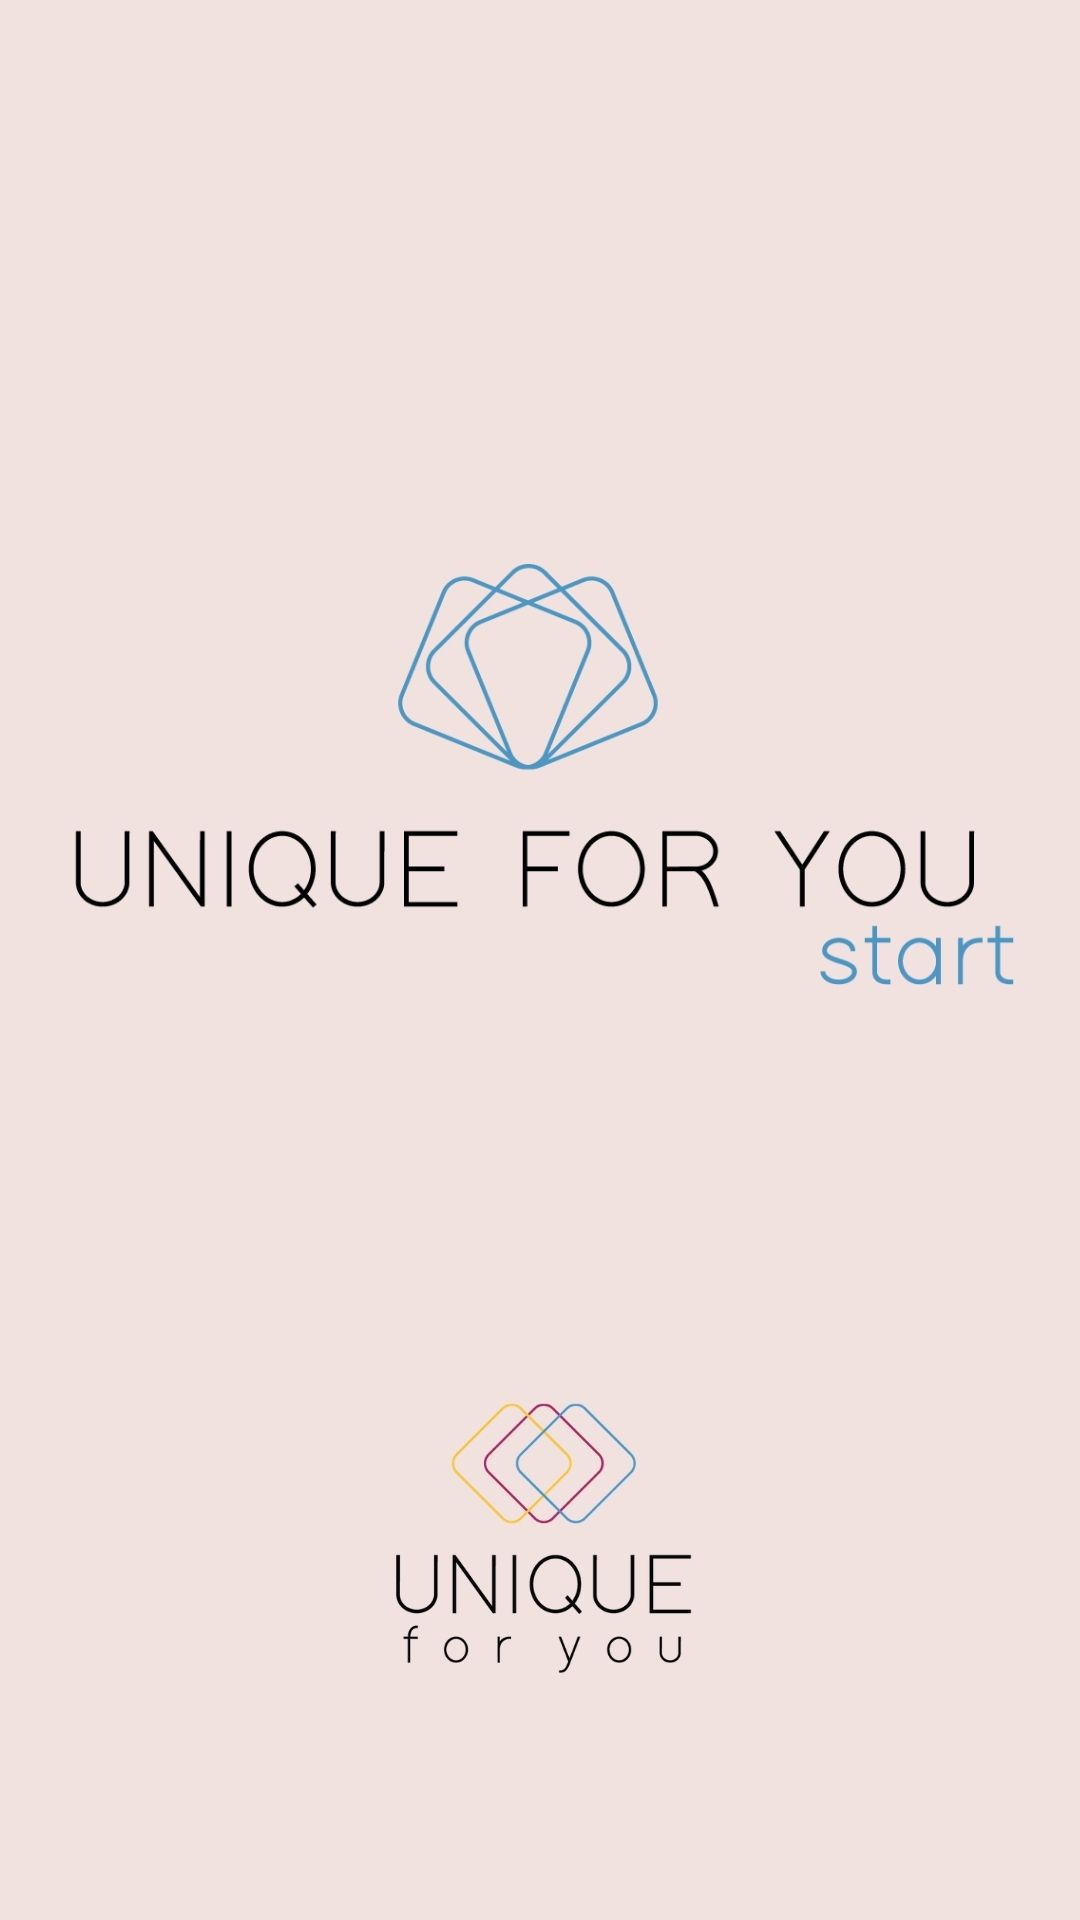 UNIQUE FOR YOU START